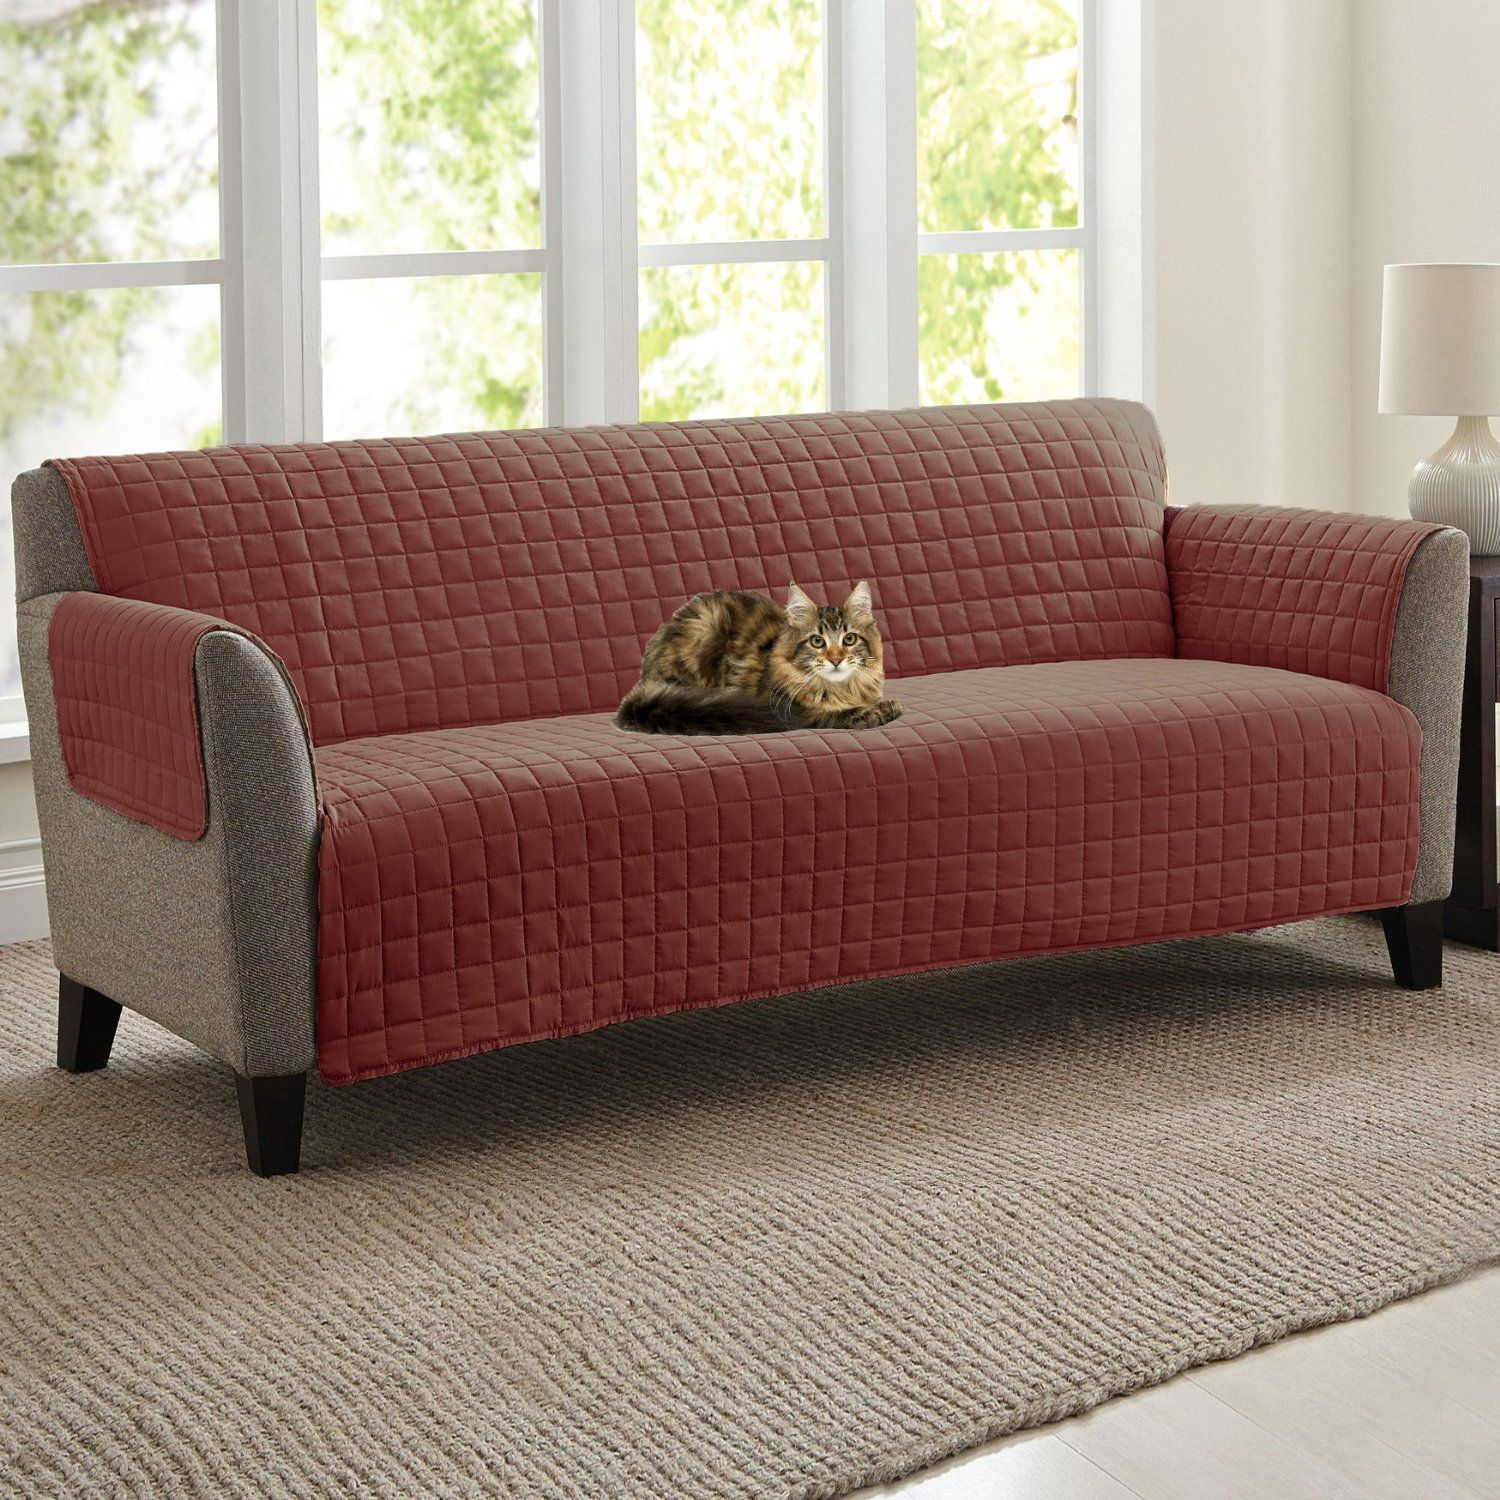 Quilted Microfiber Pet Dog Couch Sofa